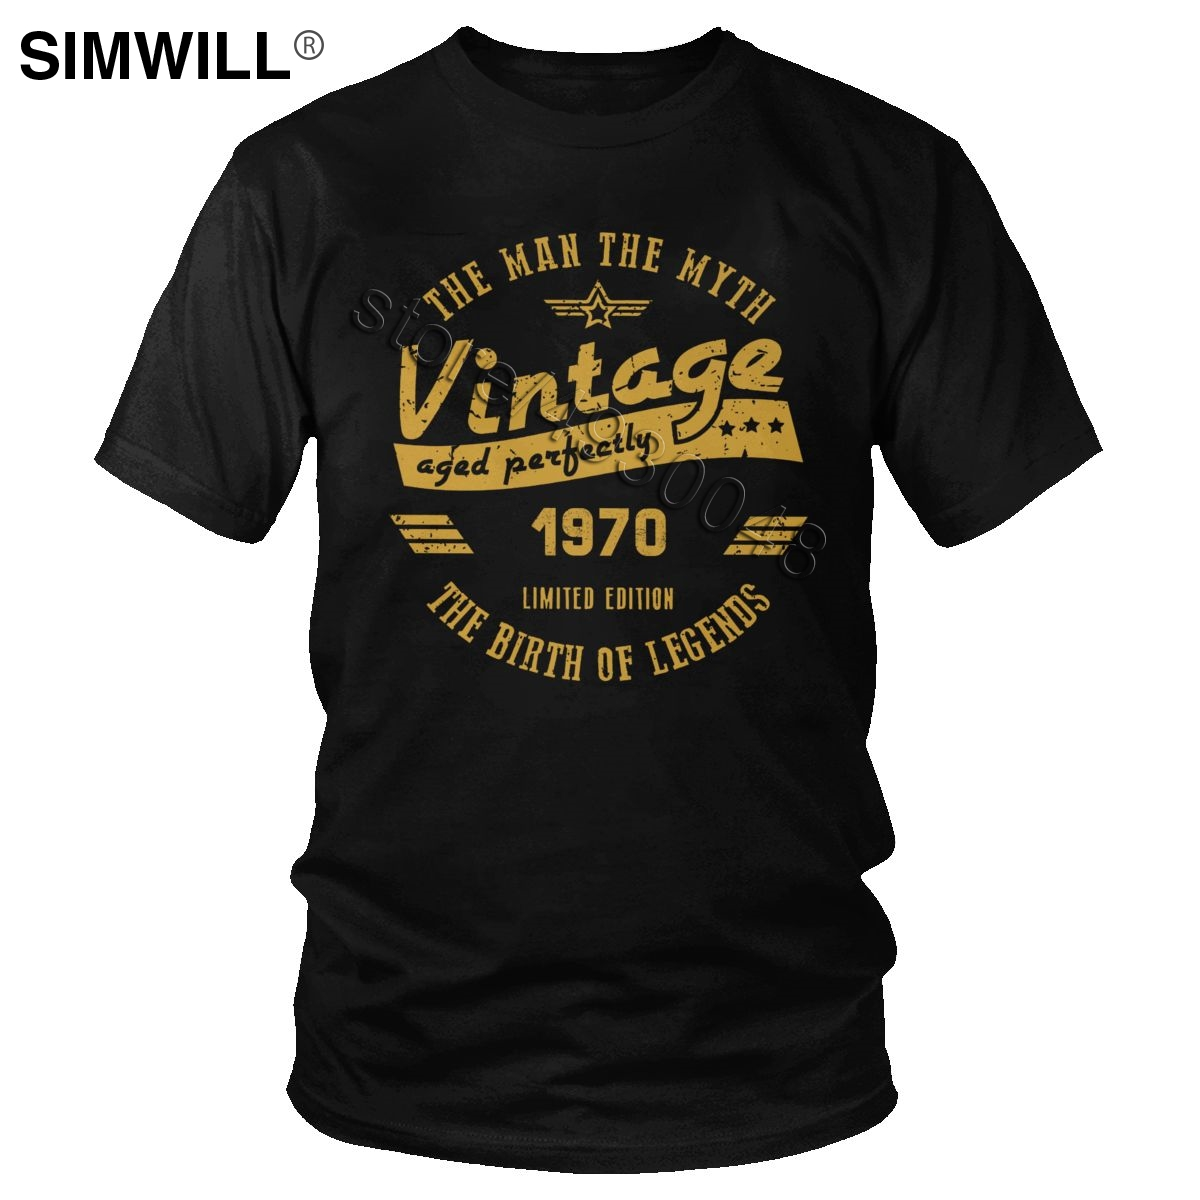 Vintage The Birth Of Legend 1970 T Shirt Short Sleeved The Man The Myth T-shirt 50th Birthday Gift Tshirt 50 Years Old Tee Tops